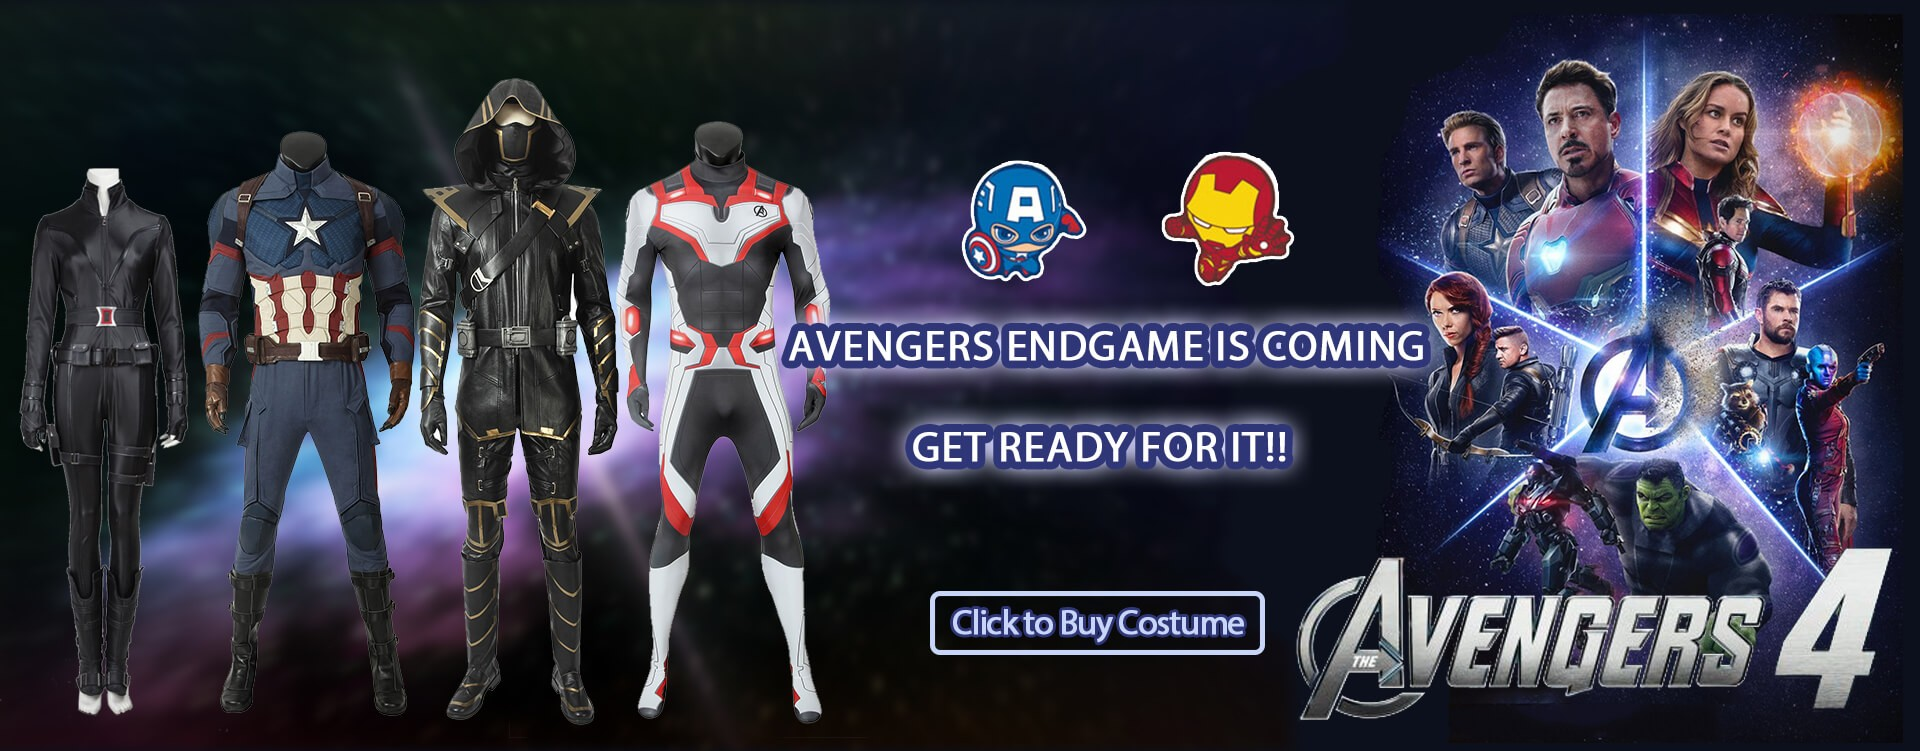 AVENGERS ENDGAME IS COMING, GET READY FOR IT!!